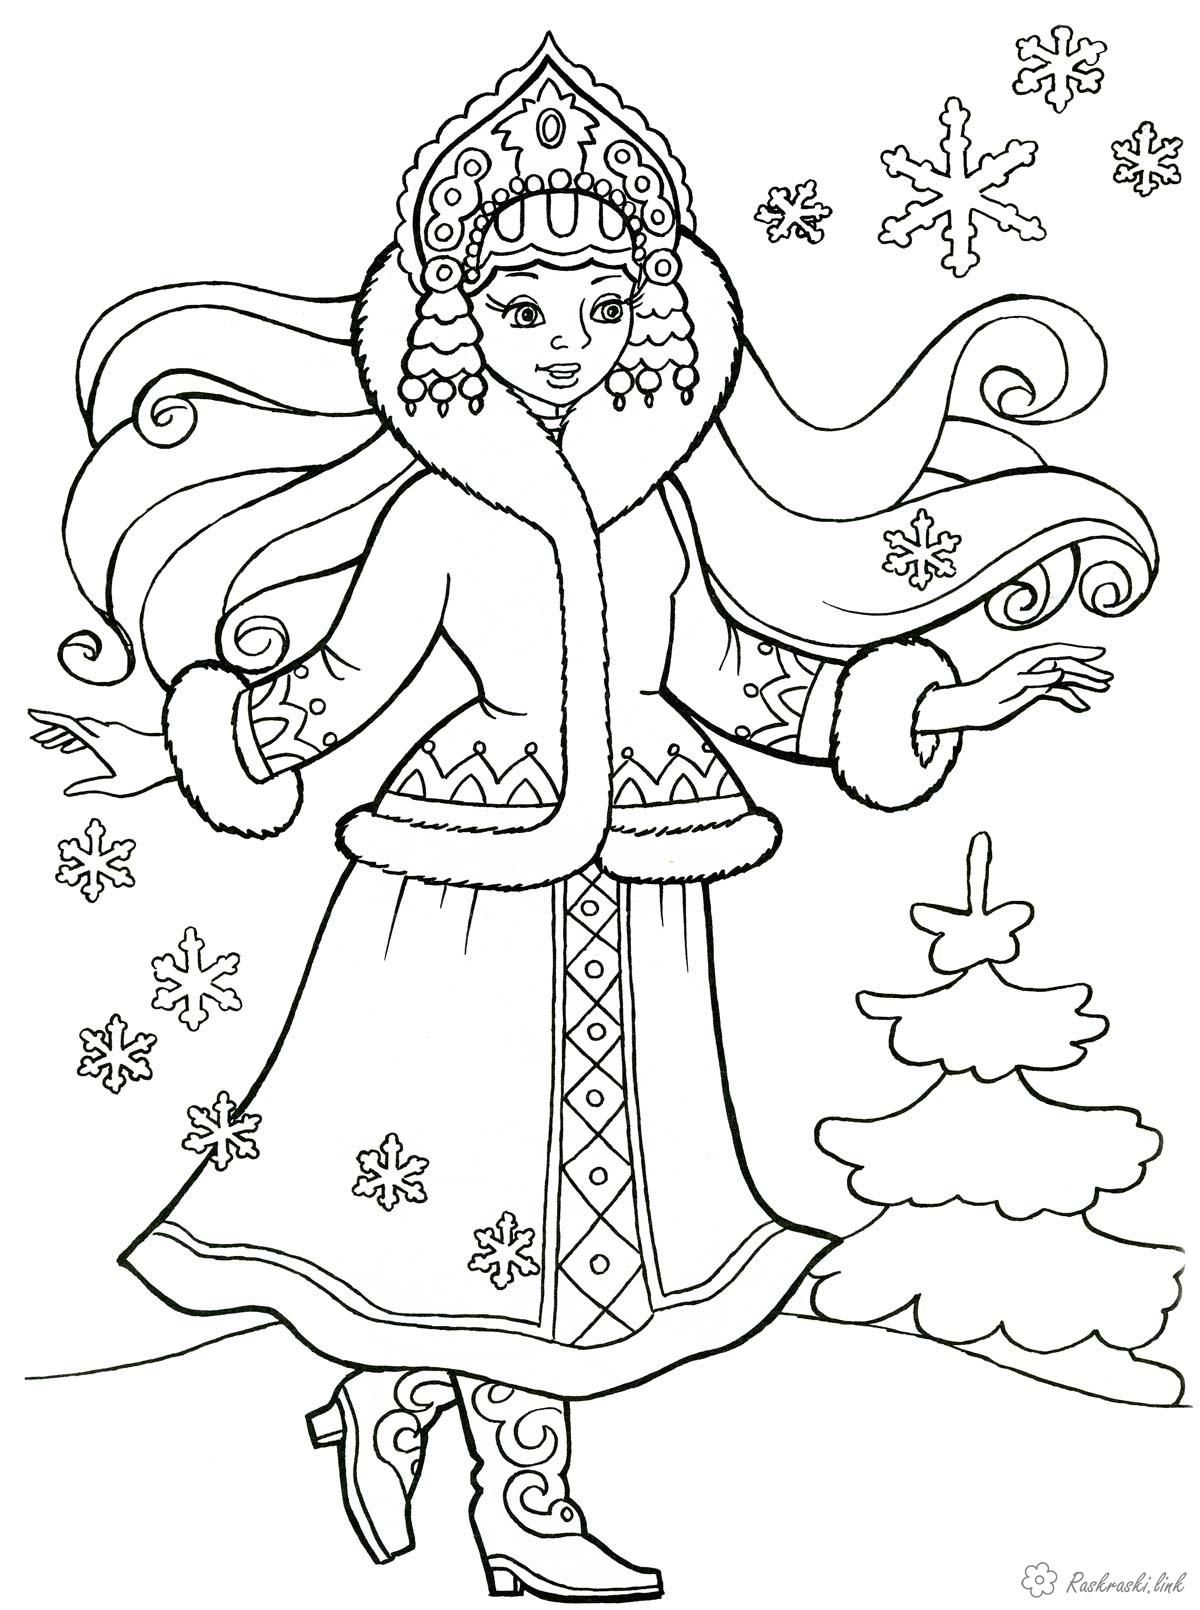 National costumes peoples of Russia Free Coloring pages online print.